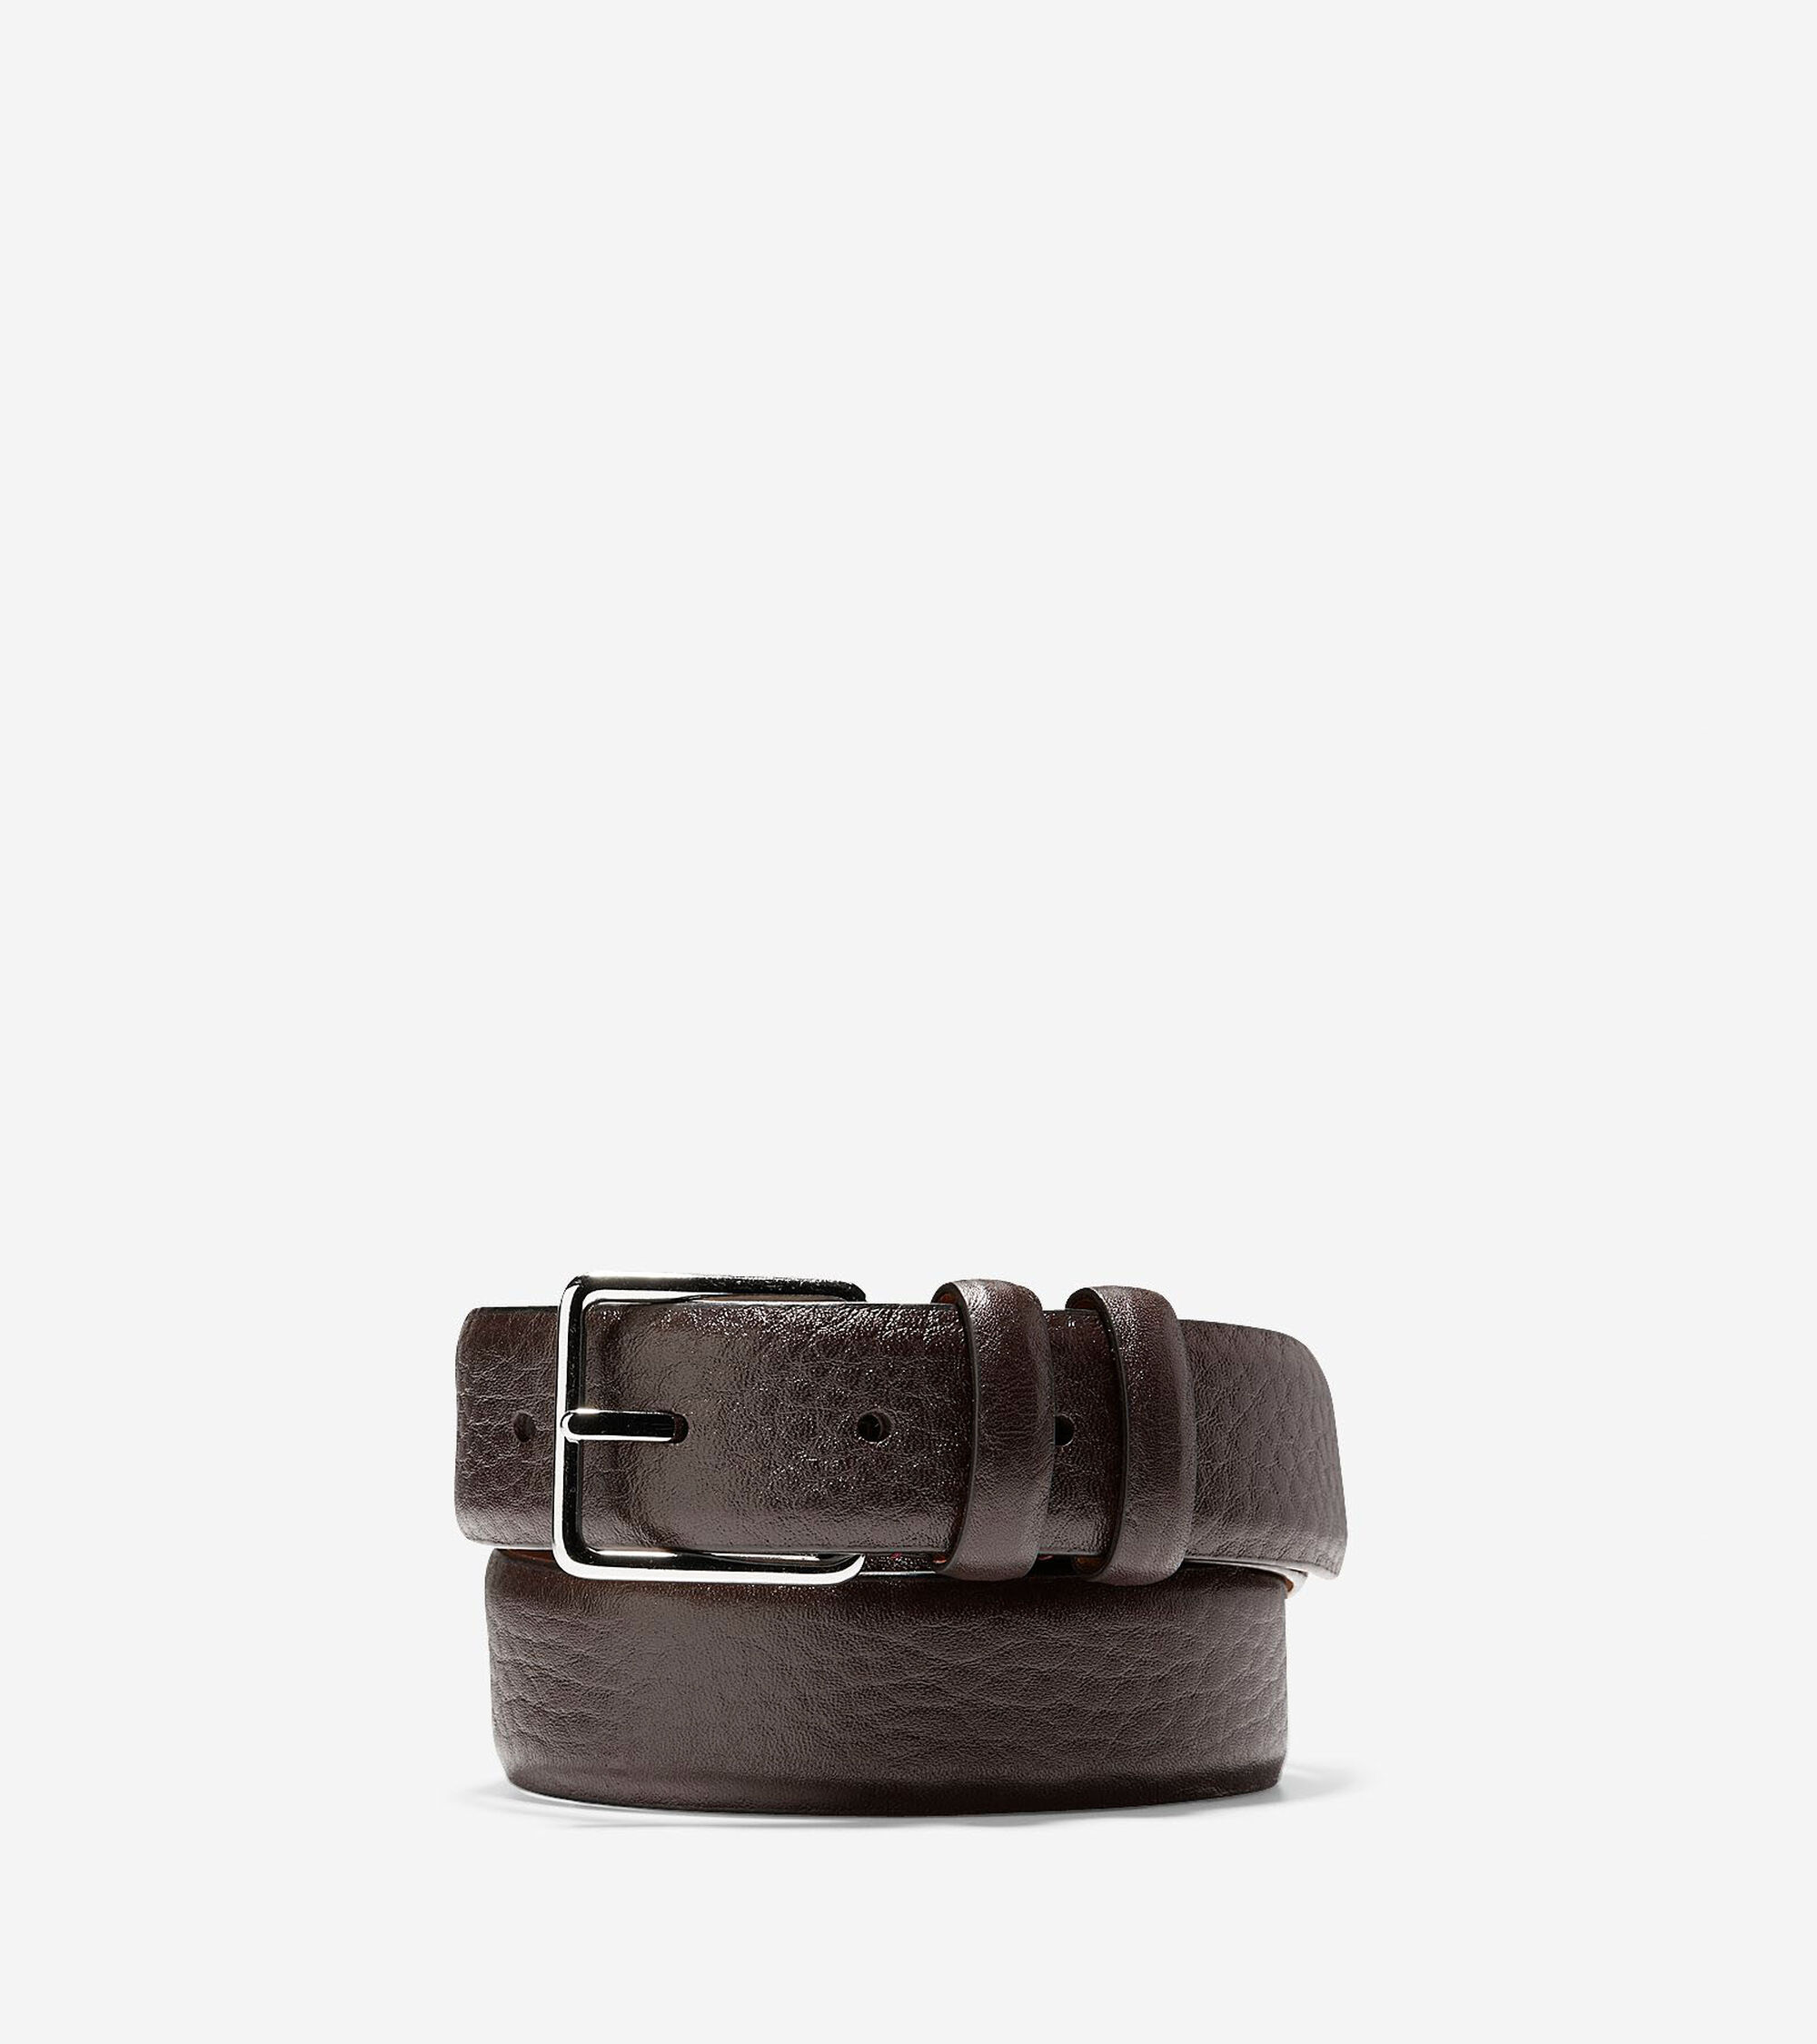 Accessories > 32mm Feather Edge Strap Belt